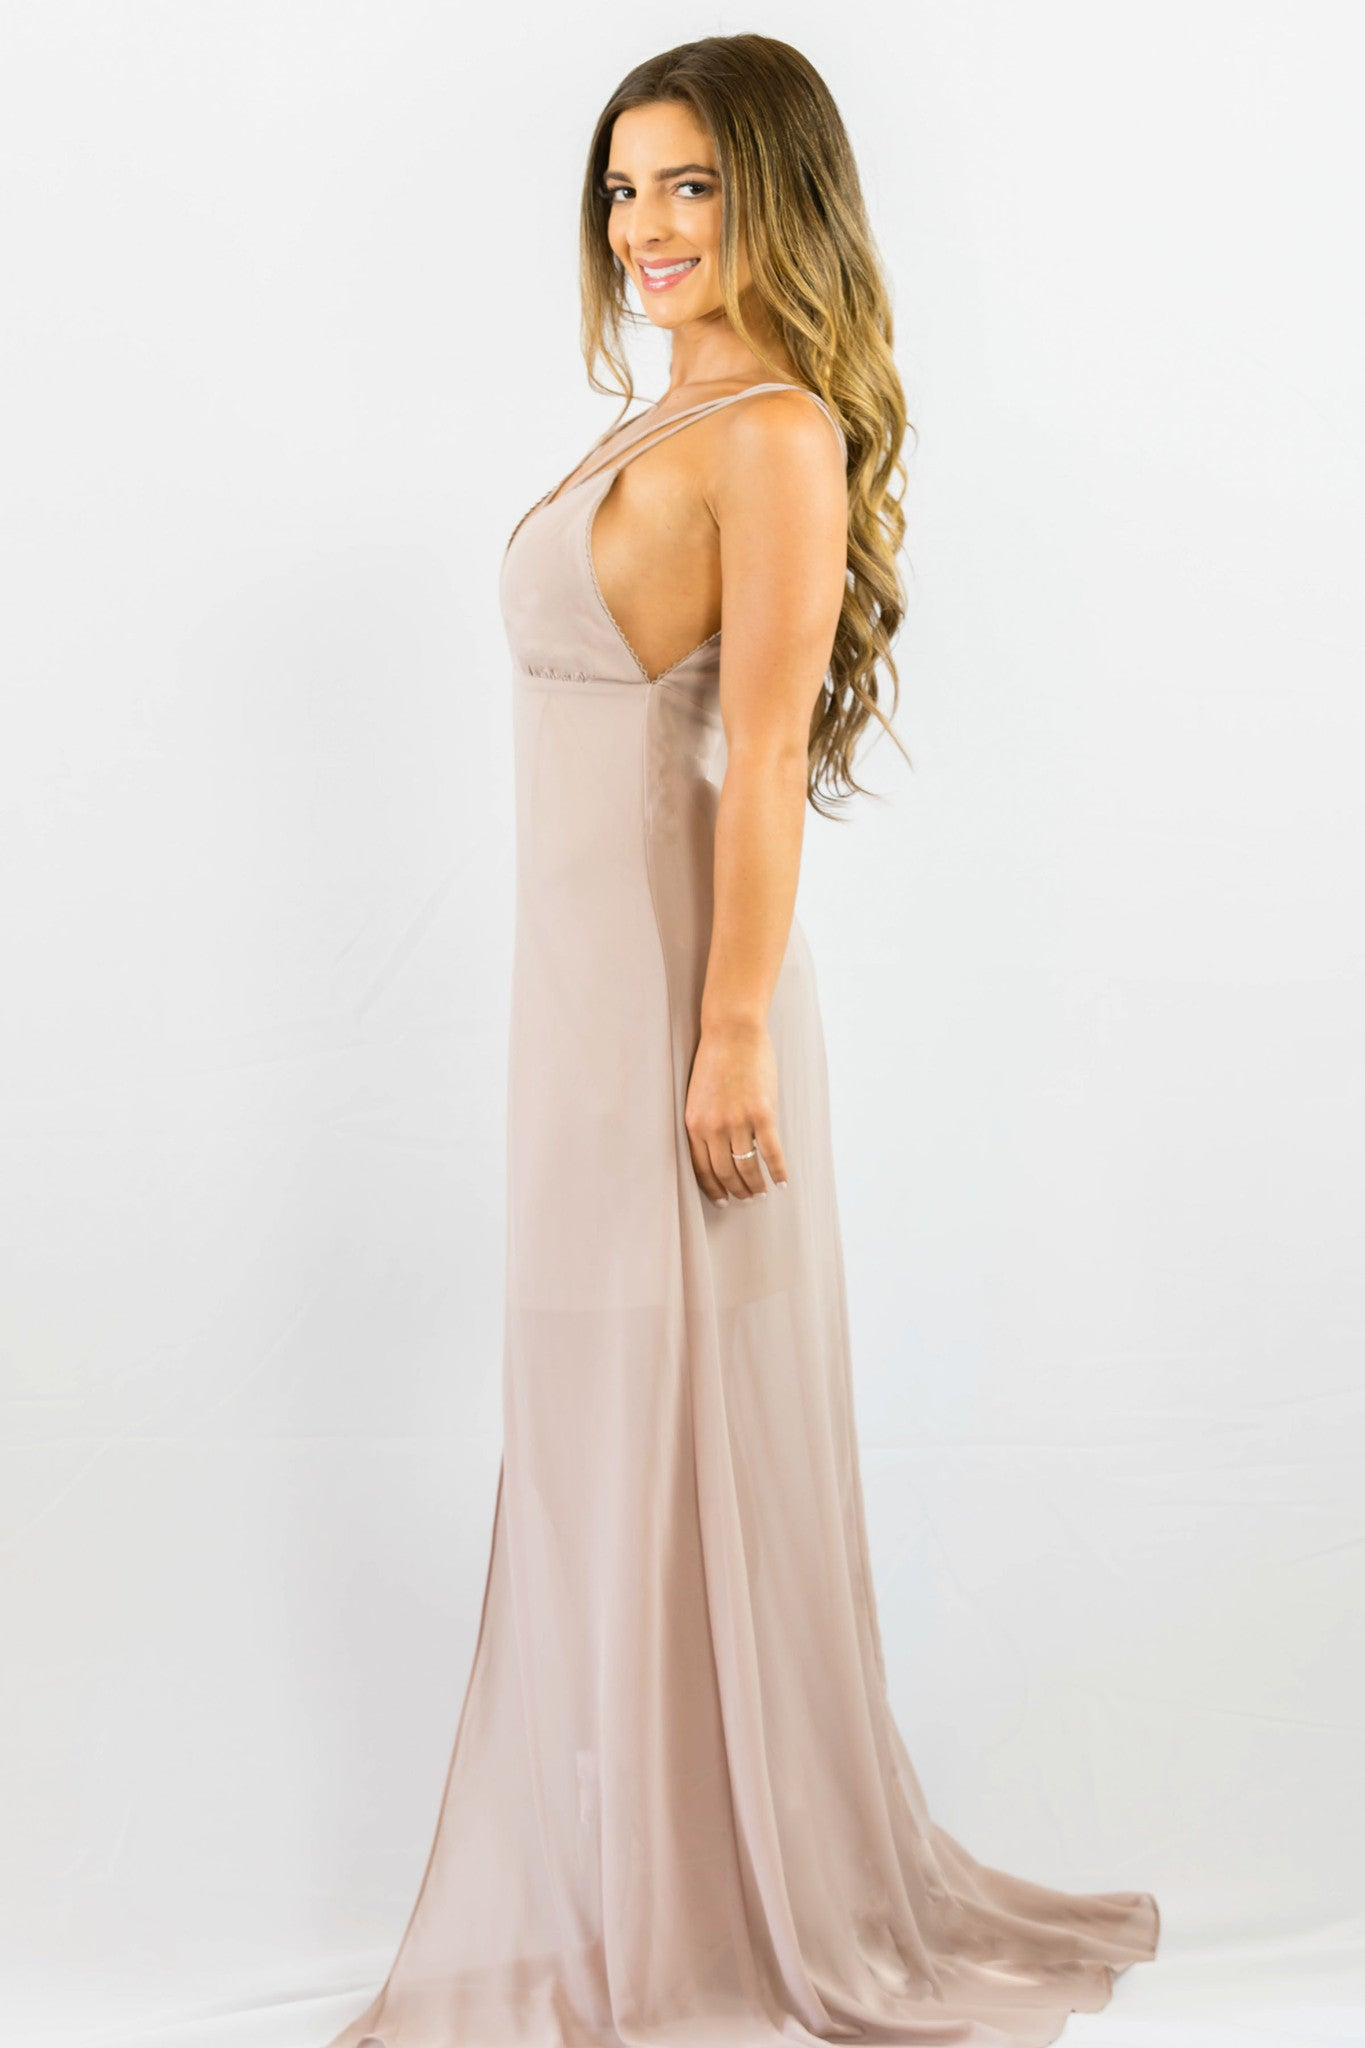 WYLDR Stay With Me Plunge Maxi Dress - DRESSES - WYLDR - Free Vibrationz - 4